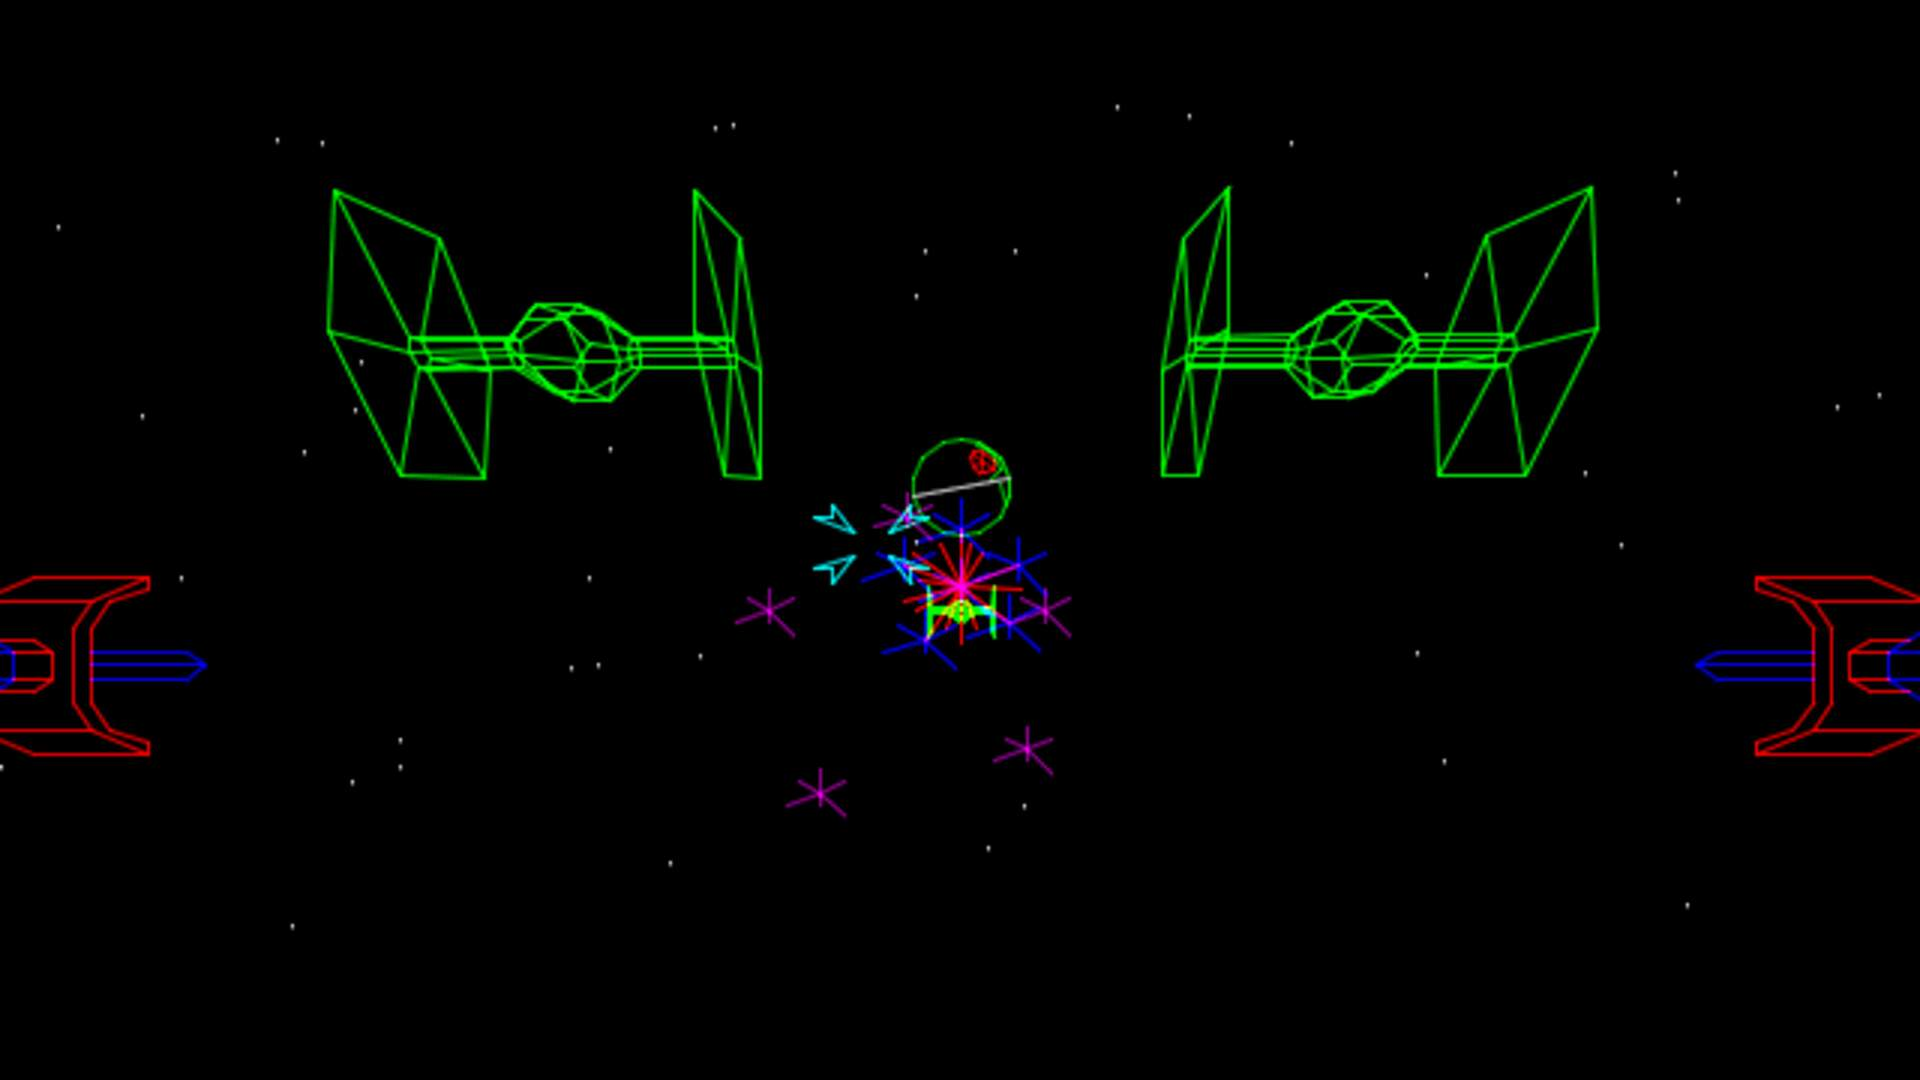 """The Greatest Star Wars Game Ever"": Atari's Star Wars Arcade Game"